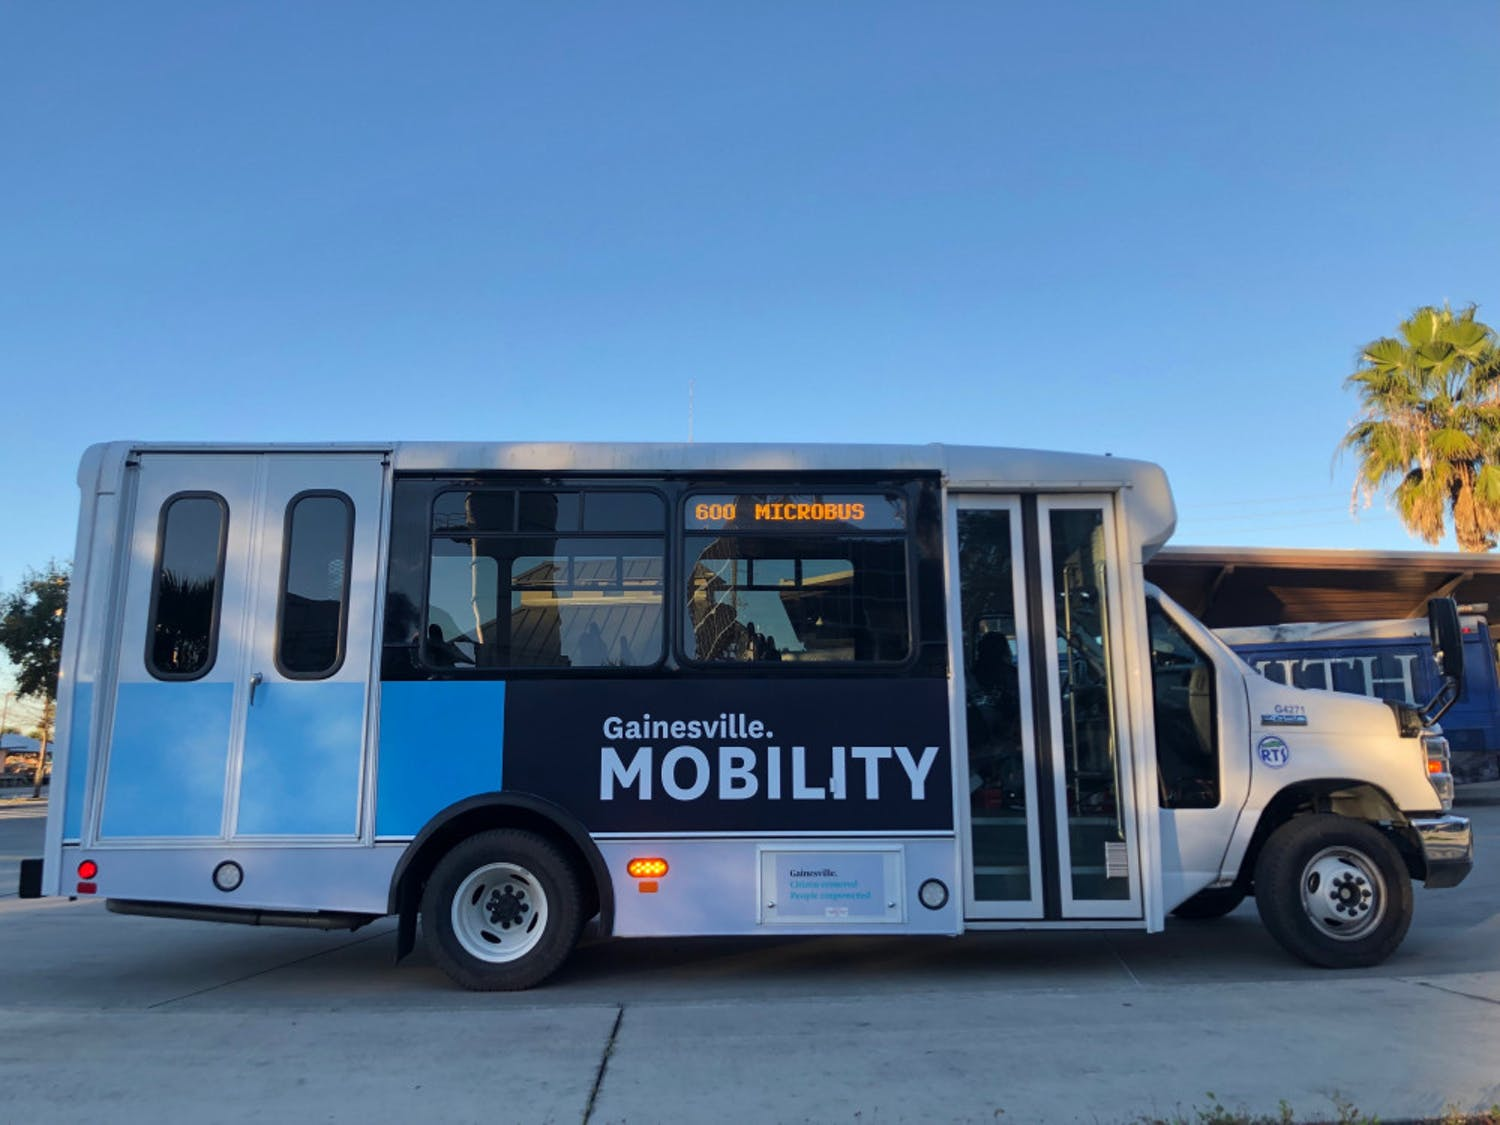 The RTS microbus is a new service for all residents of east Gainesville. The bus is free of charge and ADA equipped. Two microbuses began running Monday morning. Danielle Ivanov / Contributing Writer